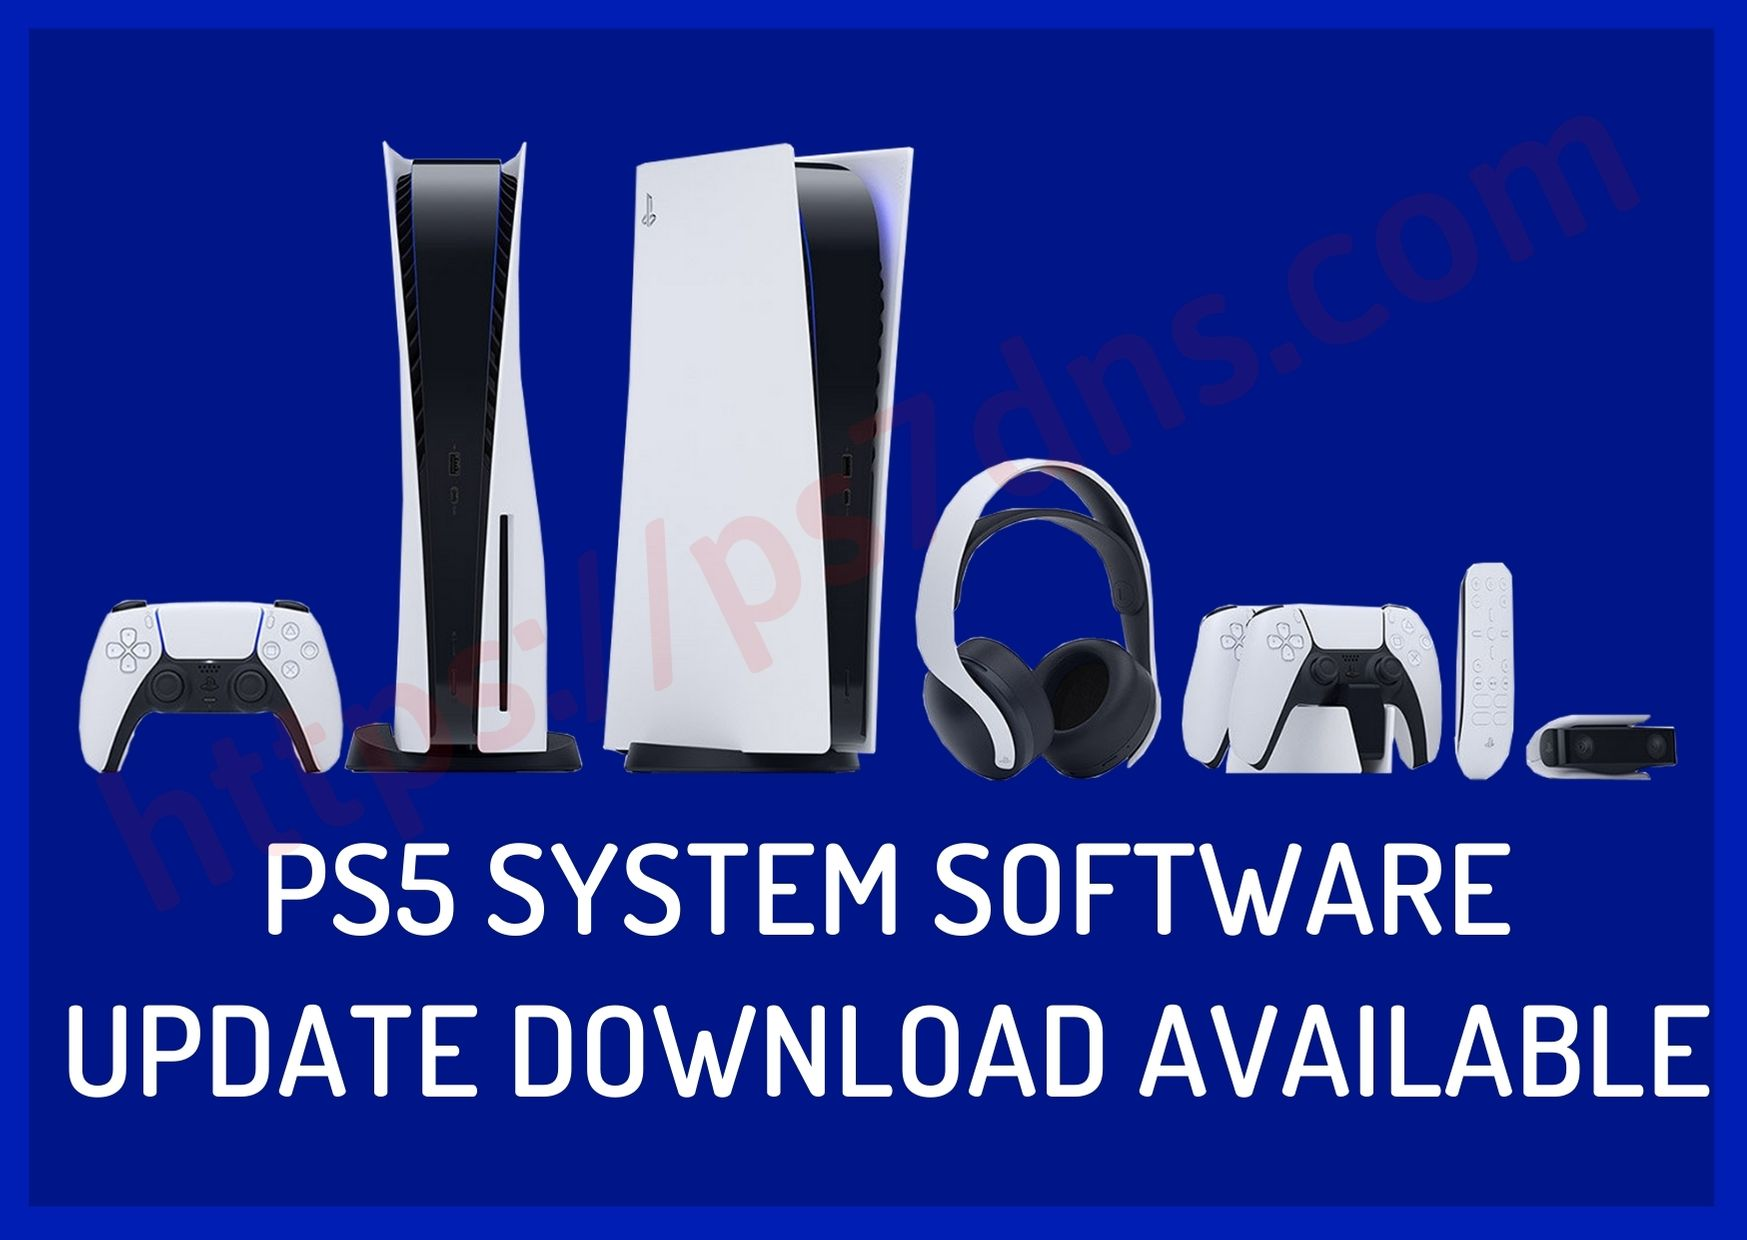 PS5 System Software Update Download Available